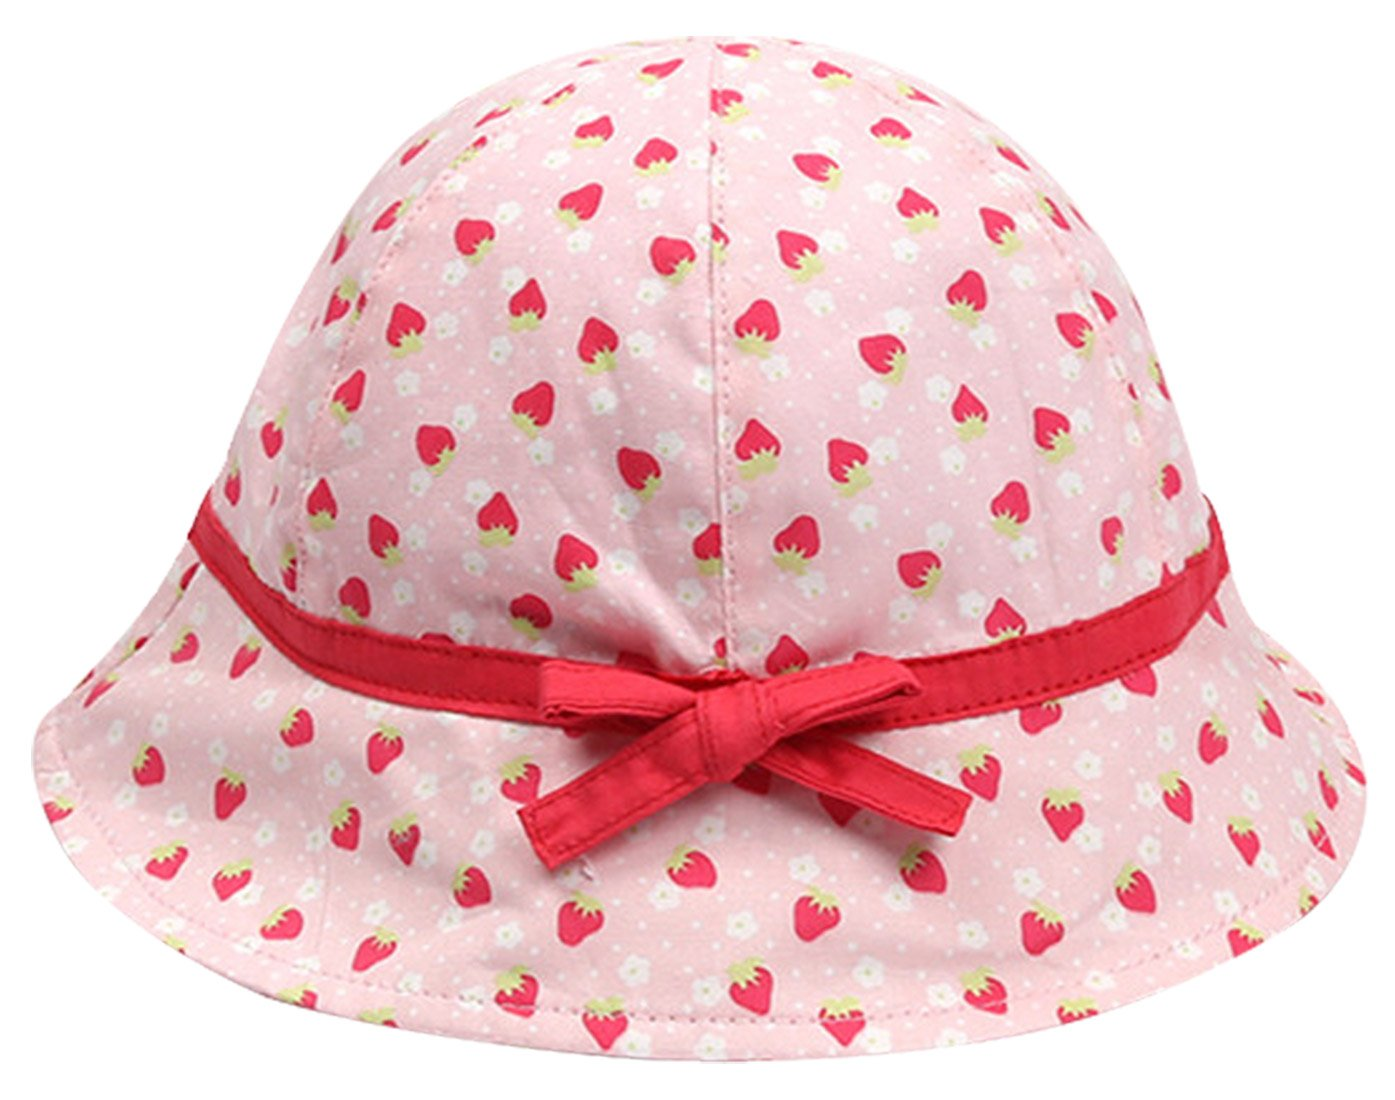 5ce7658b5c3 Girl Cherries Sun Protection Bucket Hat Kids 50+ SPF UV Protective Wide Brim  Happy Cherry